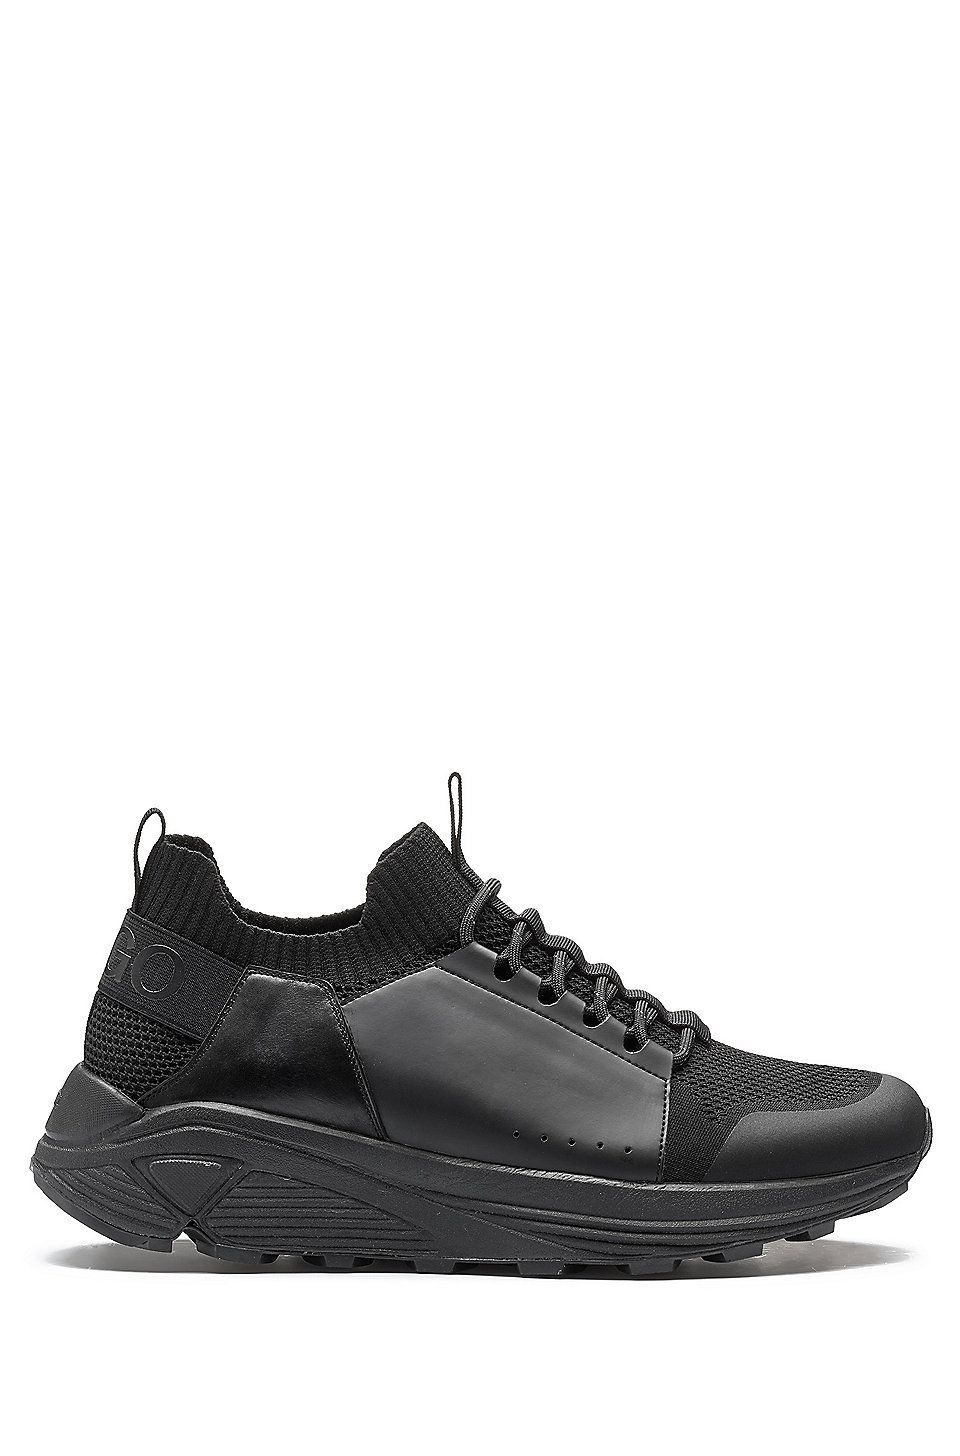 HUGO BOSS Modern lace-up trainers with